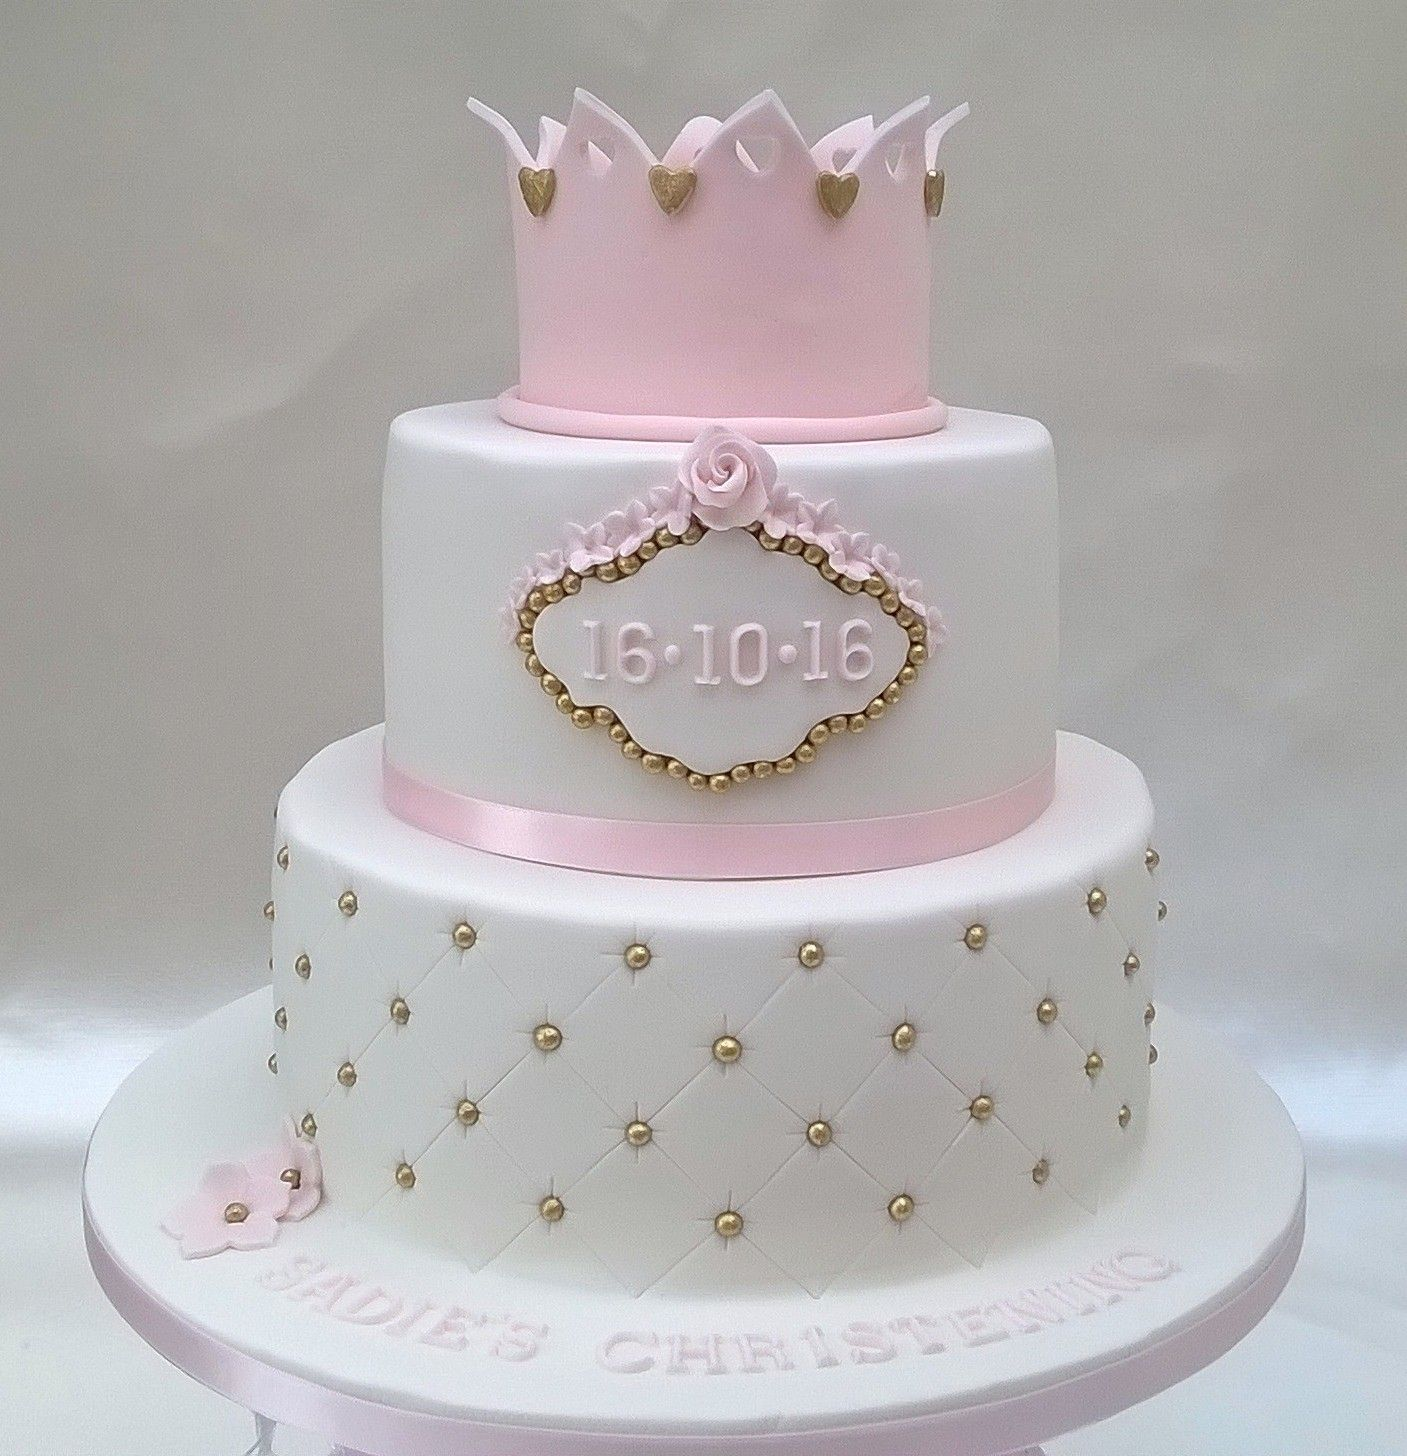 Two Tier Princess Cake With Crown Cakes Pinterest Crown